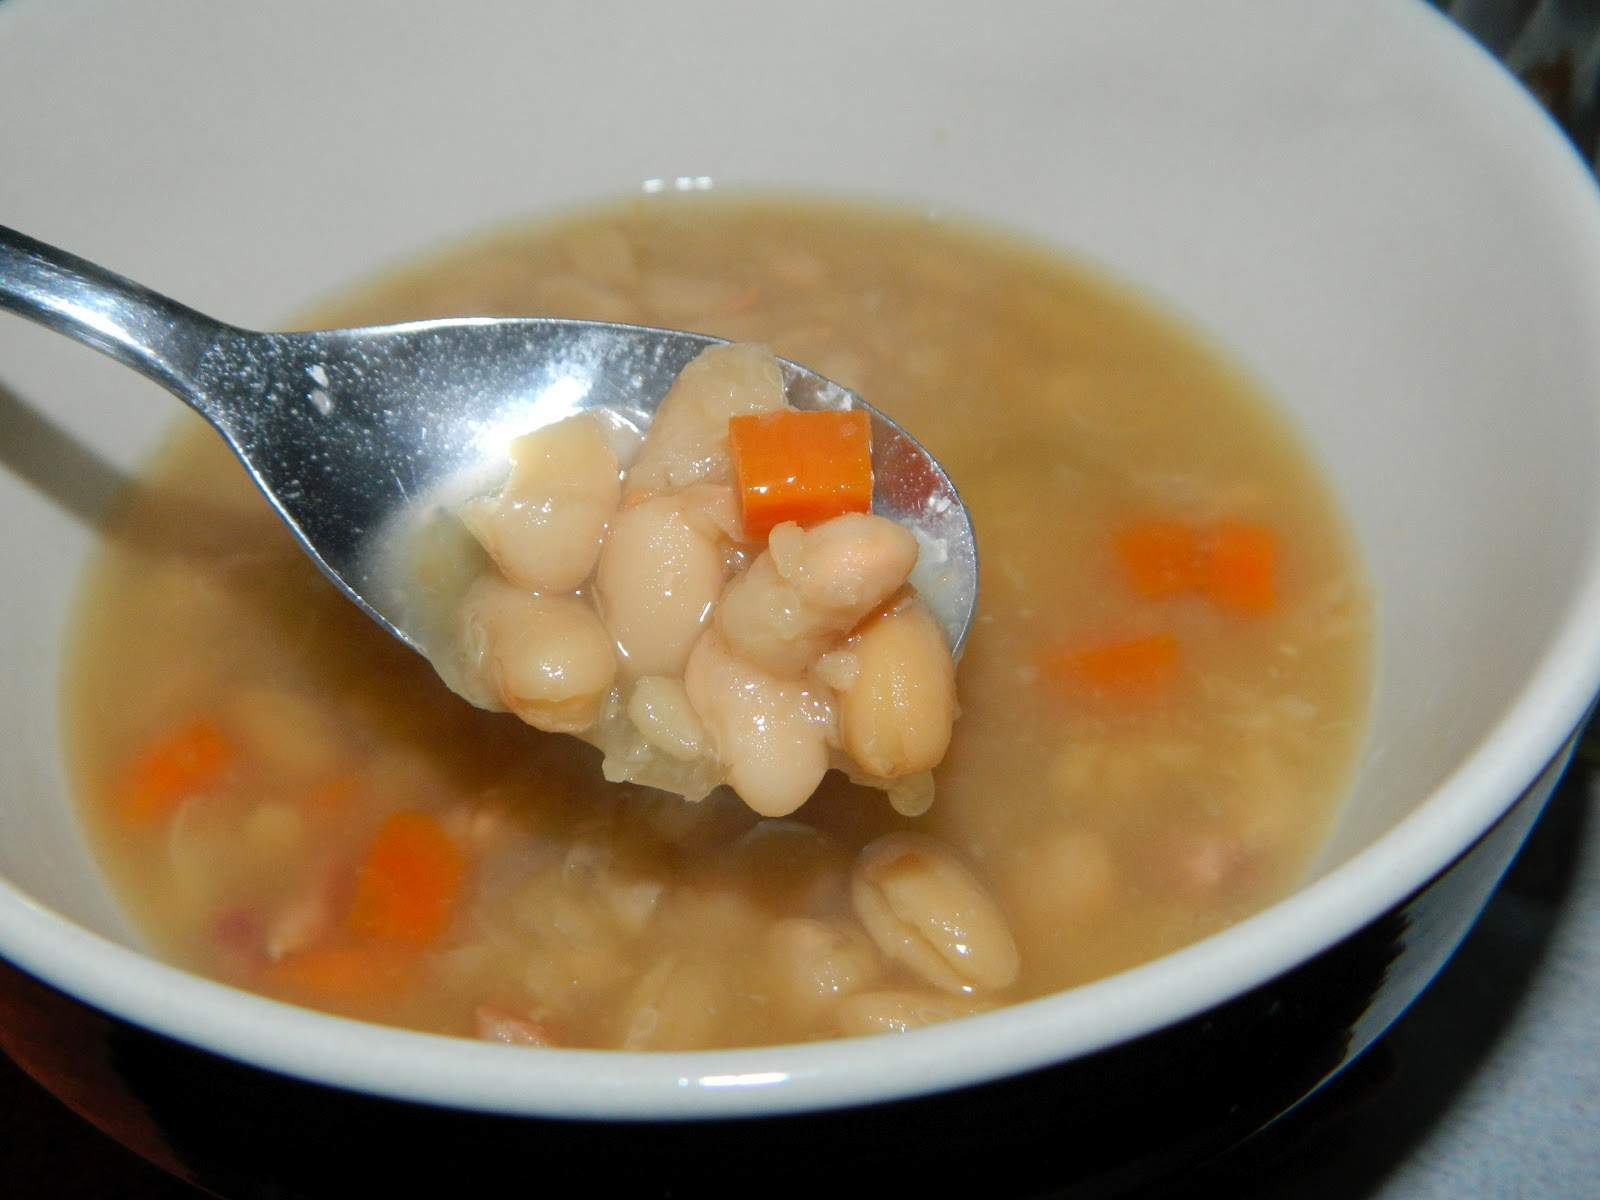 Navy Bean and Ham Soup - Canning homemade soups can help you save money, gain control over what's in your food, and save you time when you need a quick meal. Make your own canned soup with one of these delicious twelve recipes today.